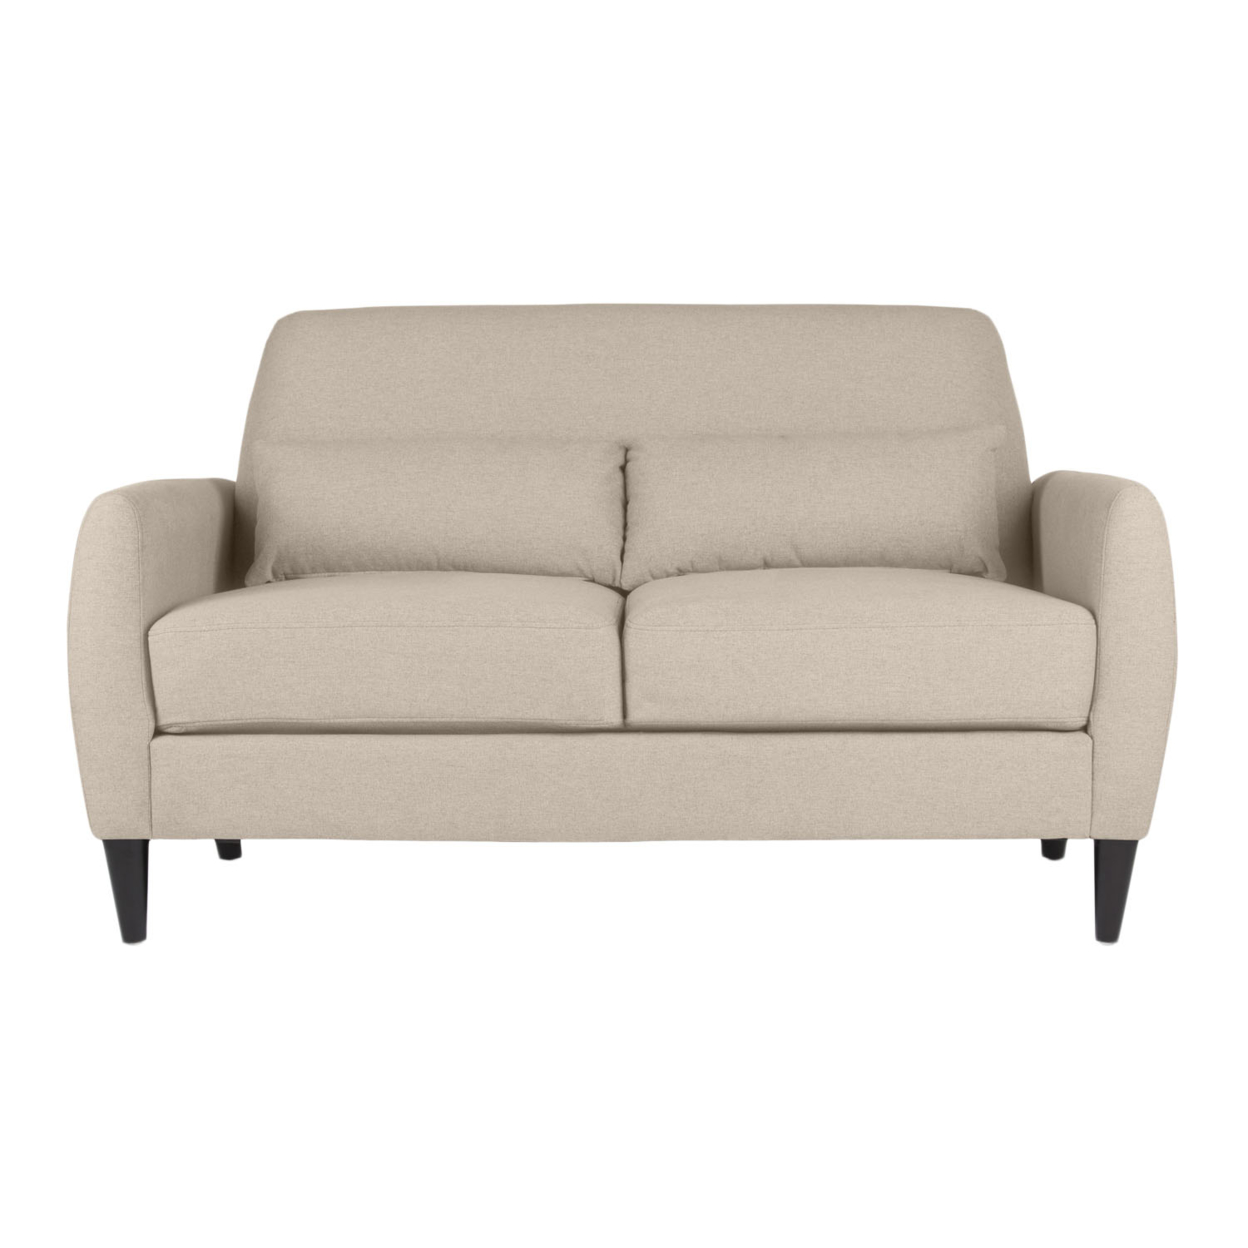 Offex Home Office Allure Loveseat - Sand offex home office plinth ottoman dark taupe